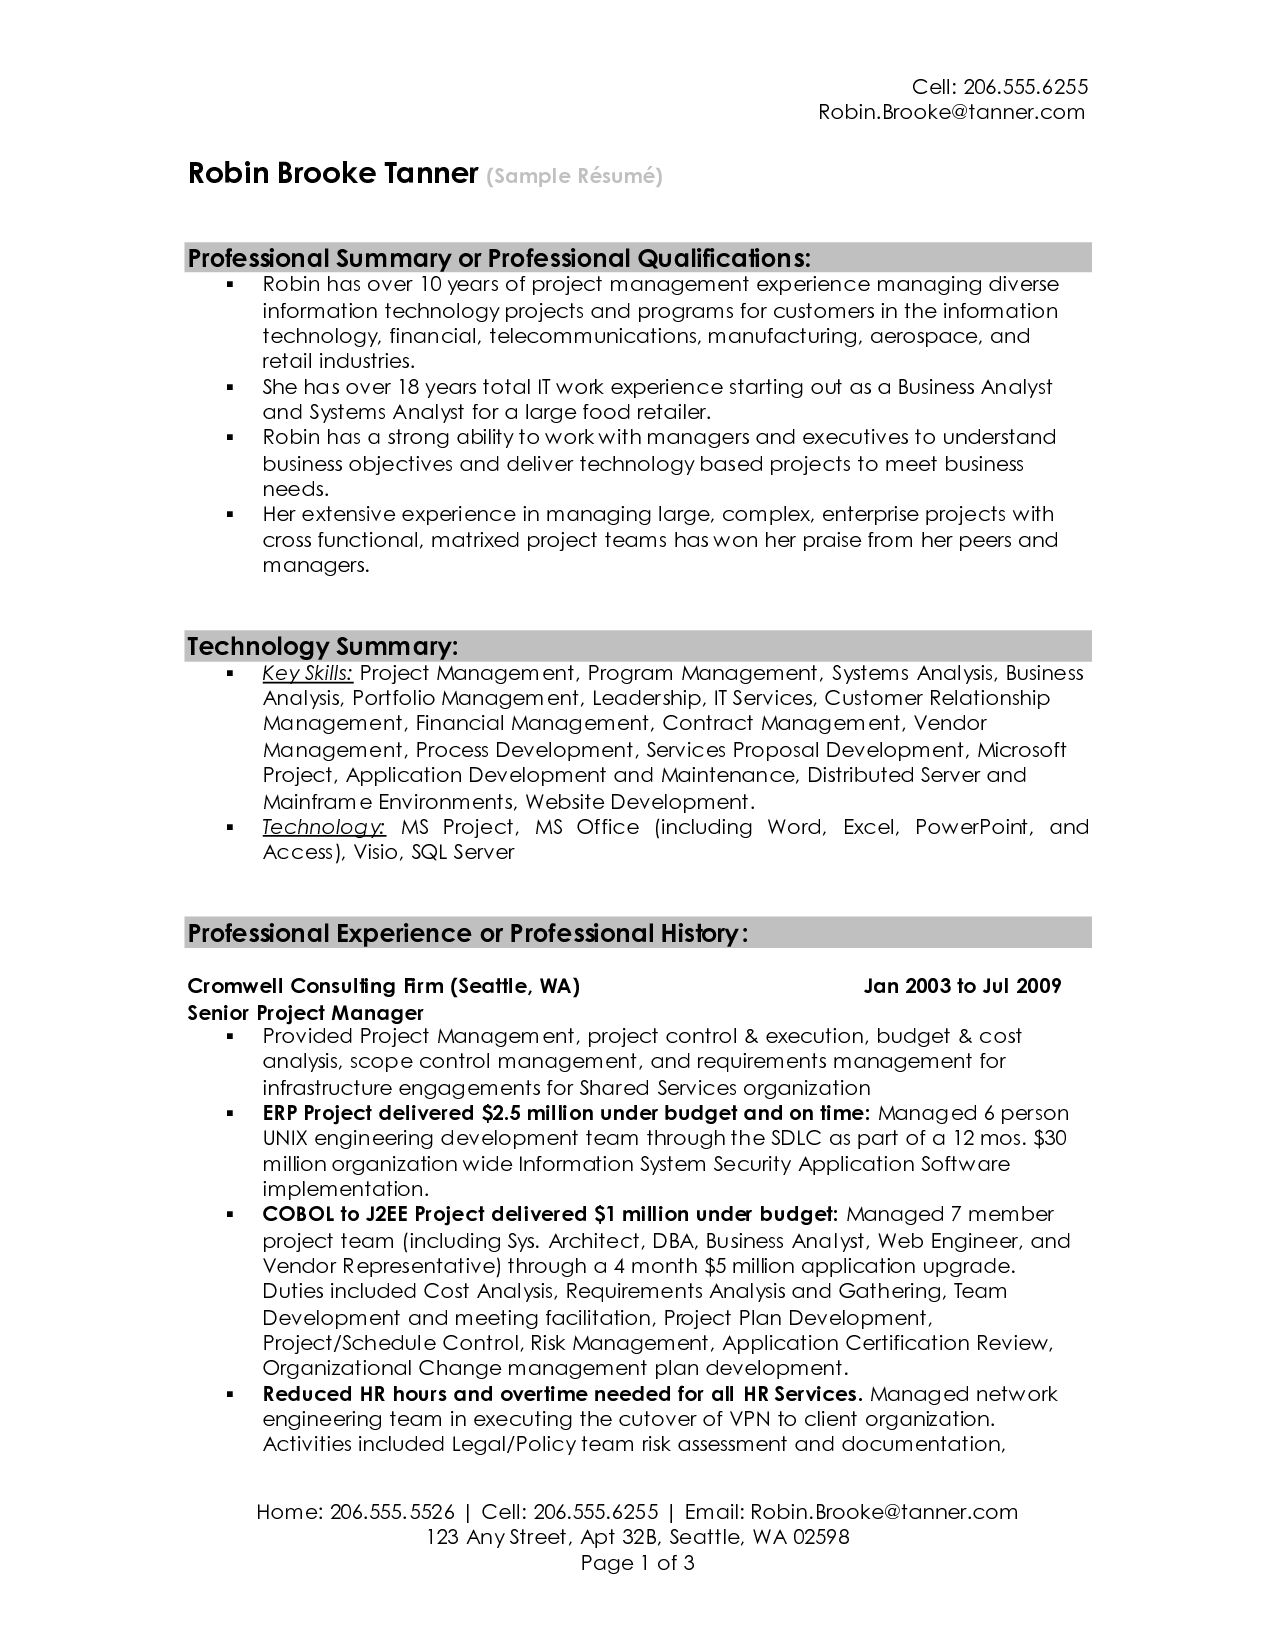 Resume Summary Examples Professional Summary Resume Examples Professional Resume Summary